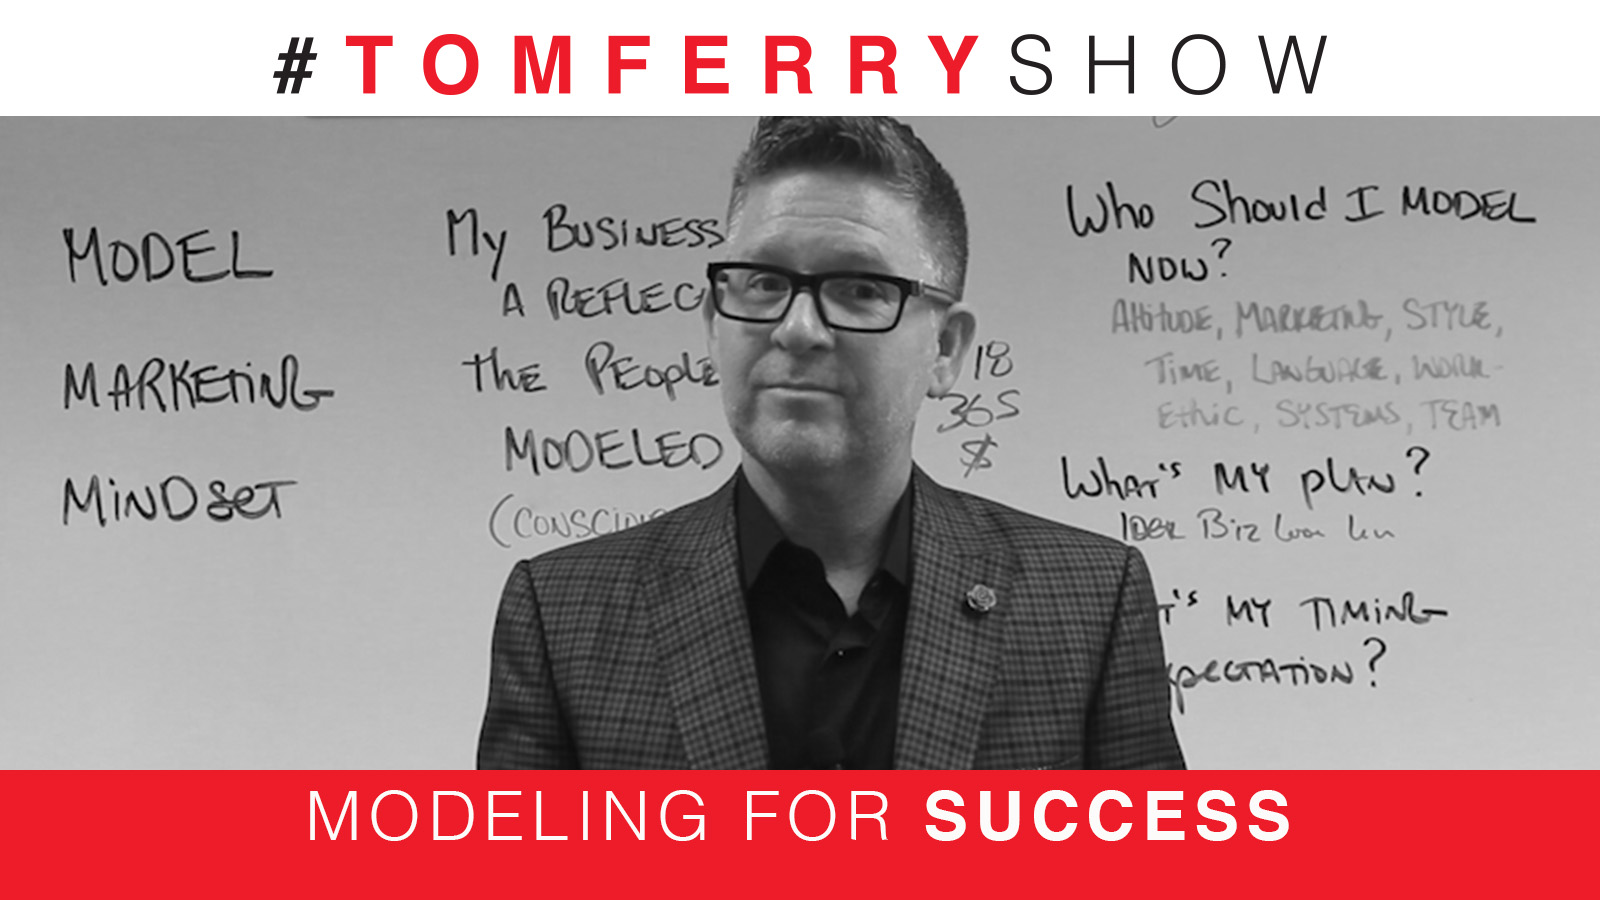 The Model, Marketing, and Mindset of Top Producers – #TomFerryShow